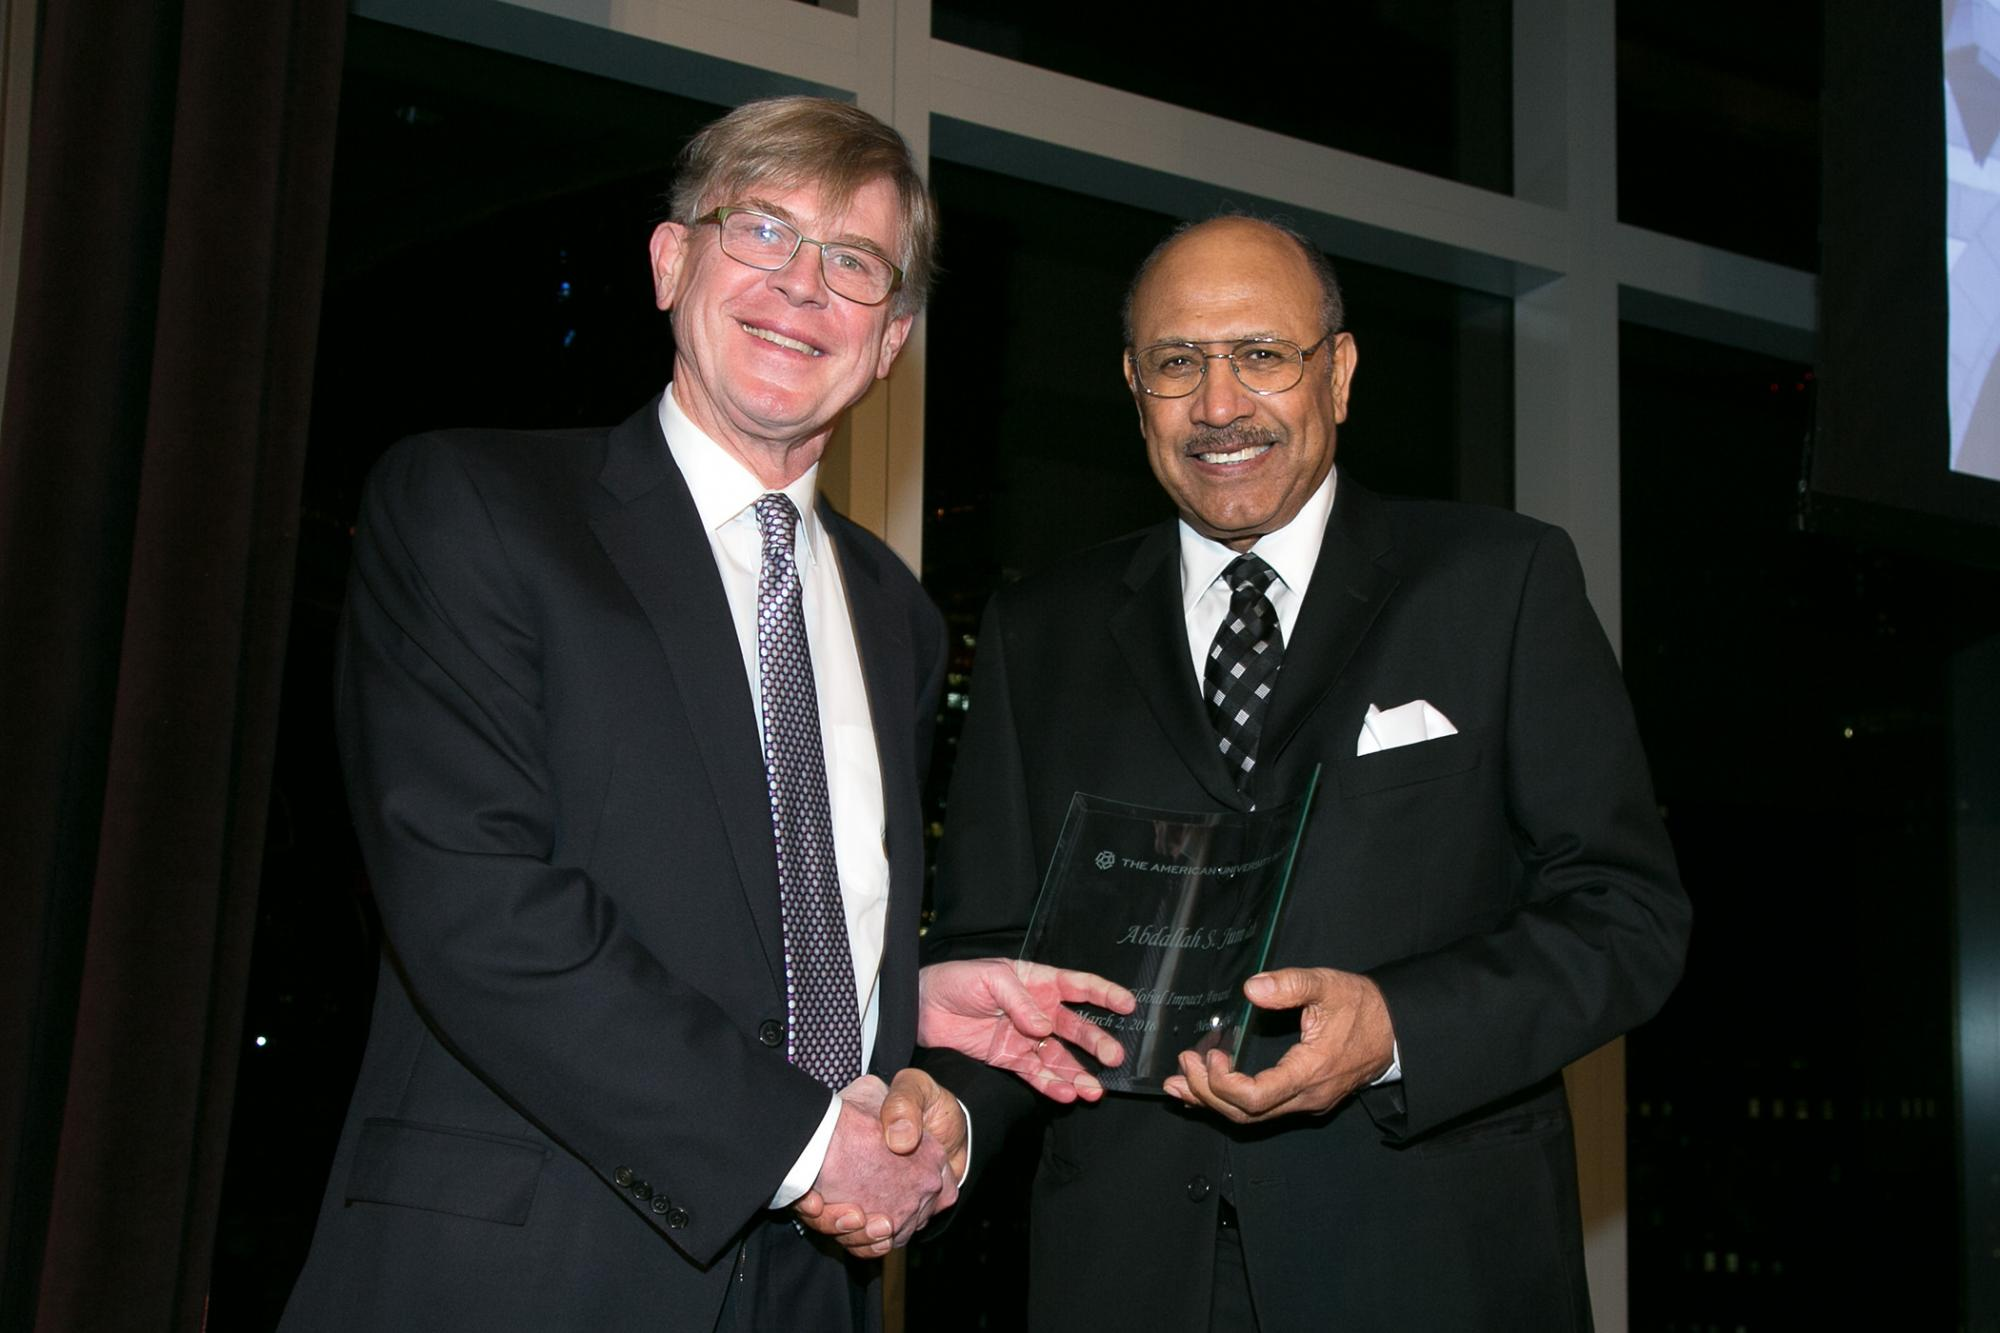 Board of Trustees Chairman Richard Bartlett presents Abdallah S. Jum'ah '65 with the Global Impact Award